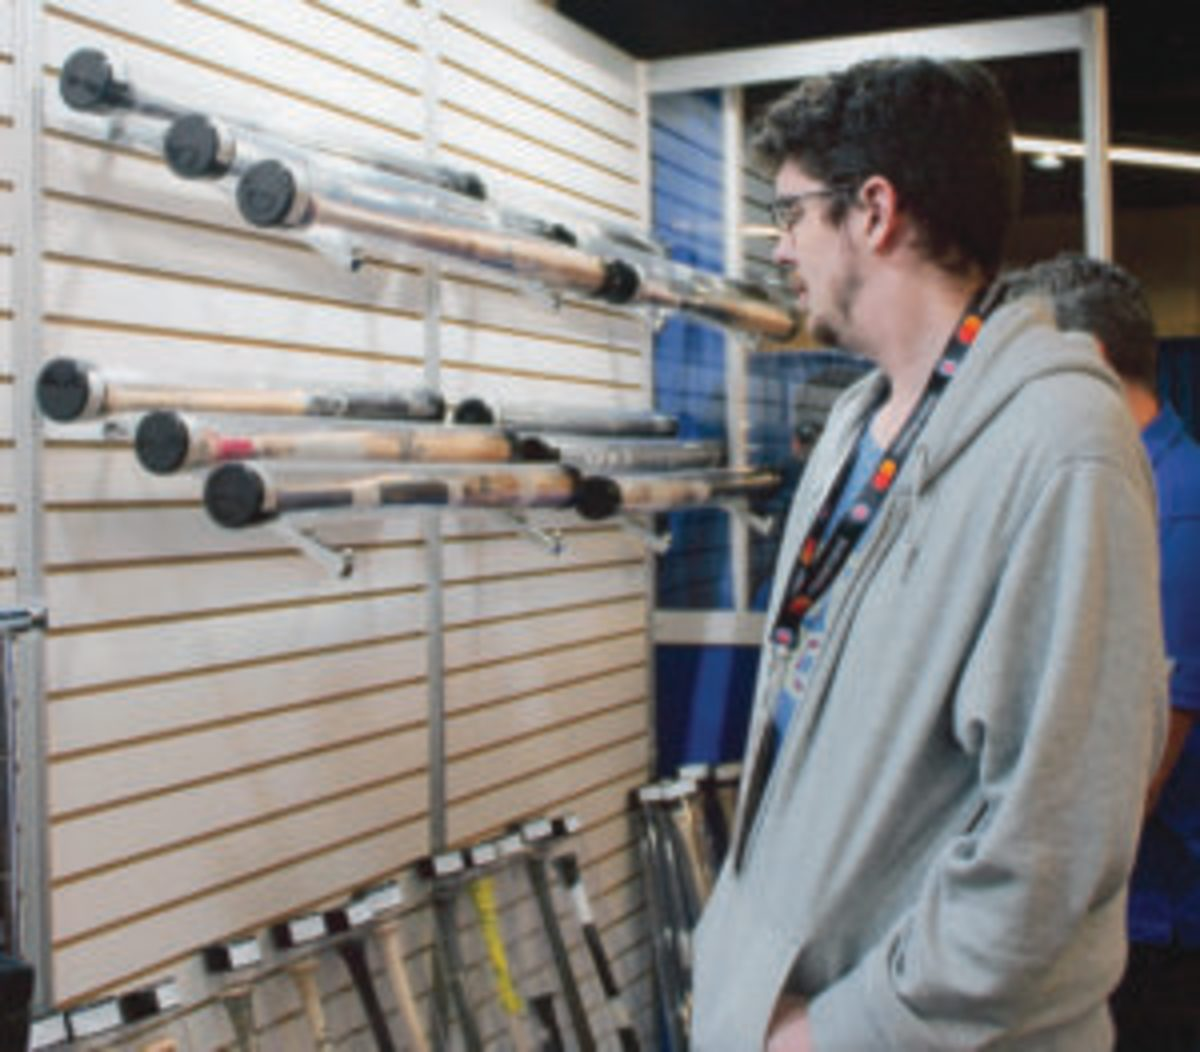 An attendee at the Cubs Convention looks over many game-used bats that were for sale.